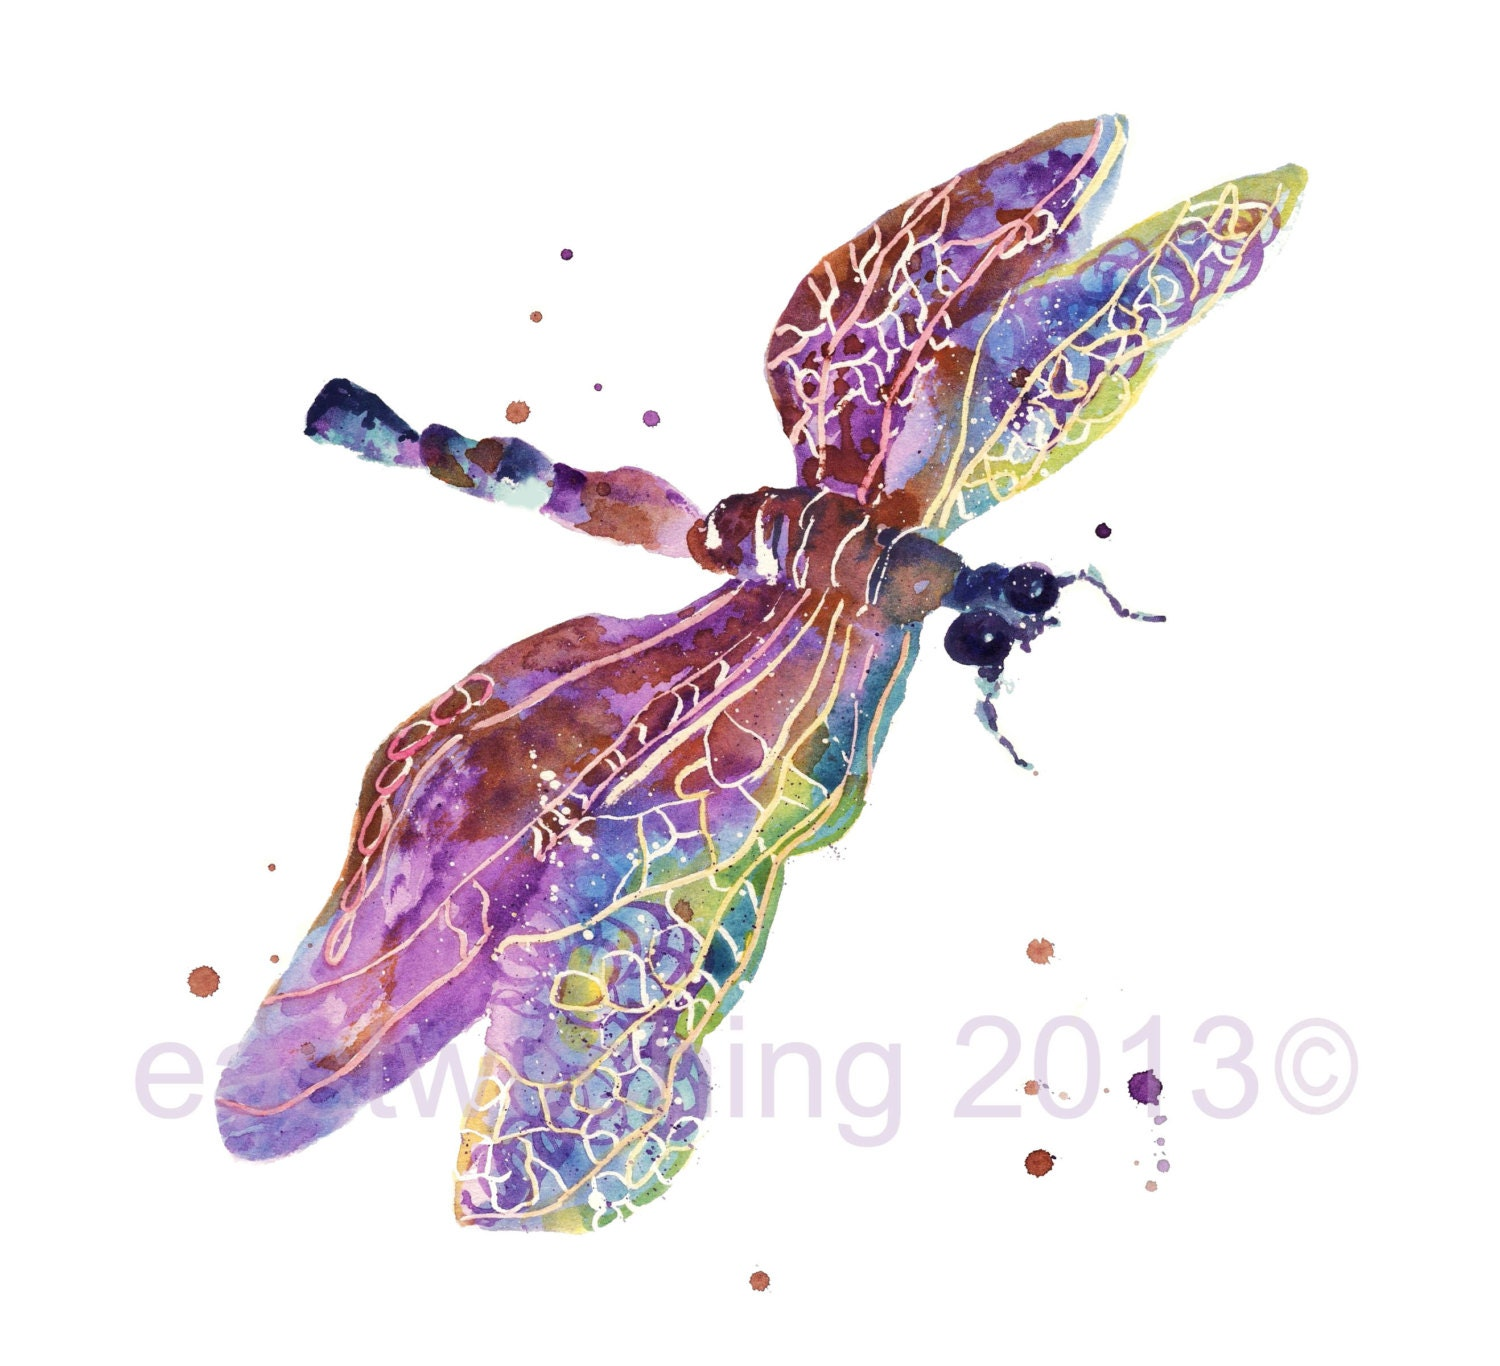 From List Of Names In Colo A Mini Portrait Of Lives: DRAGONFLY Art 5x7 Print SMALL Mothers Day Springtime